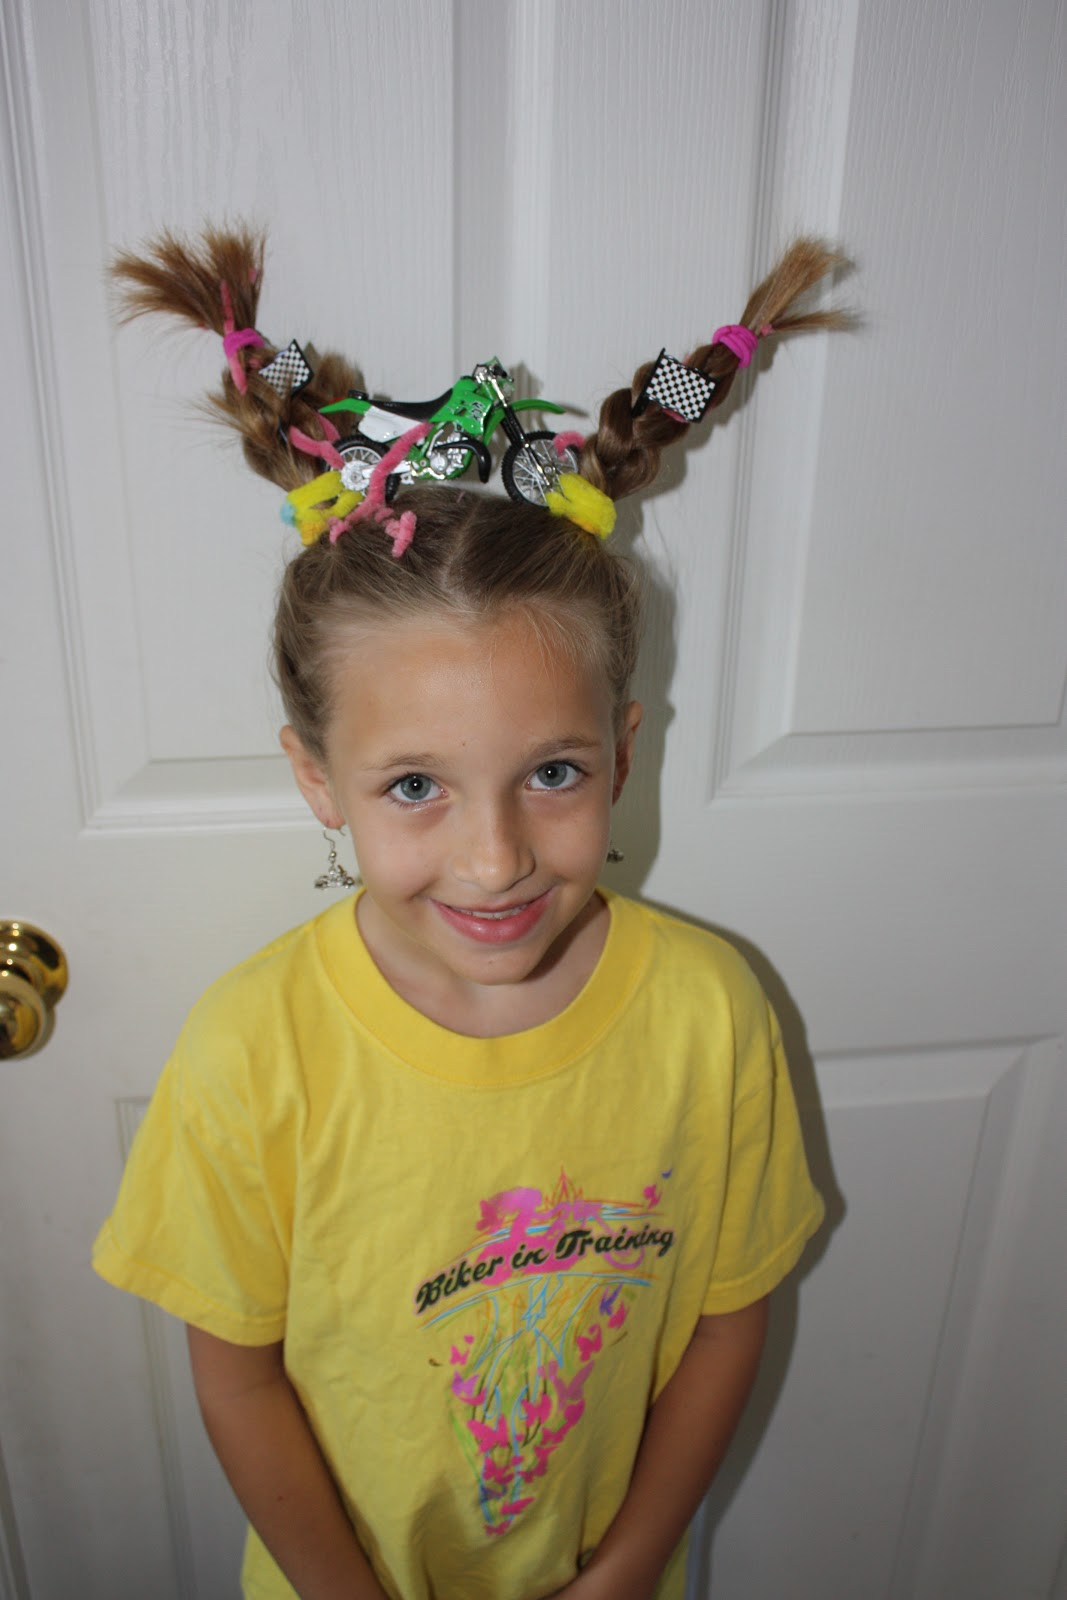 Tacky Day Hair Ideas http://getinspired2.blogspot.com/2011/05/crazy-hair-day-at-school.html